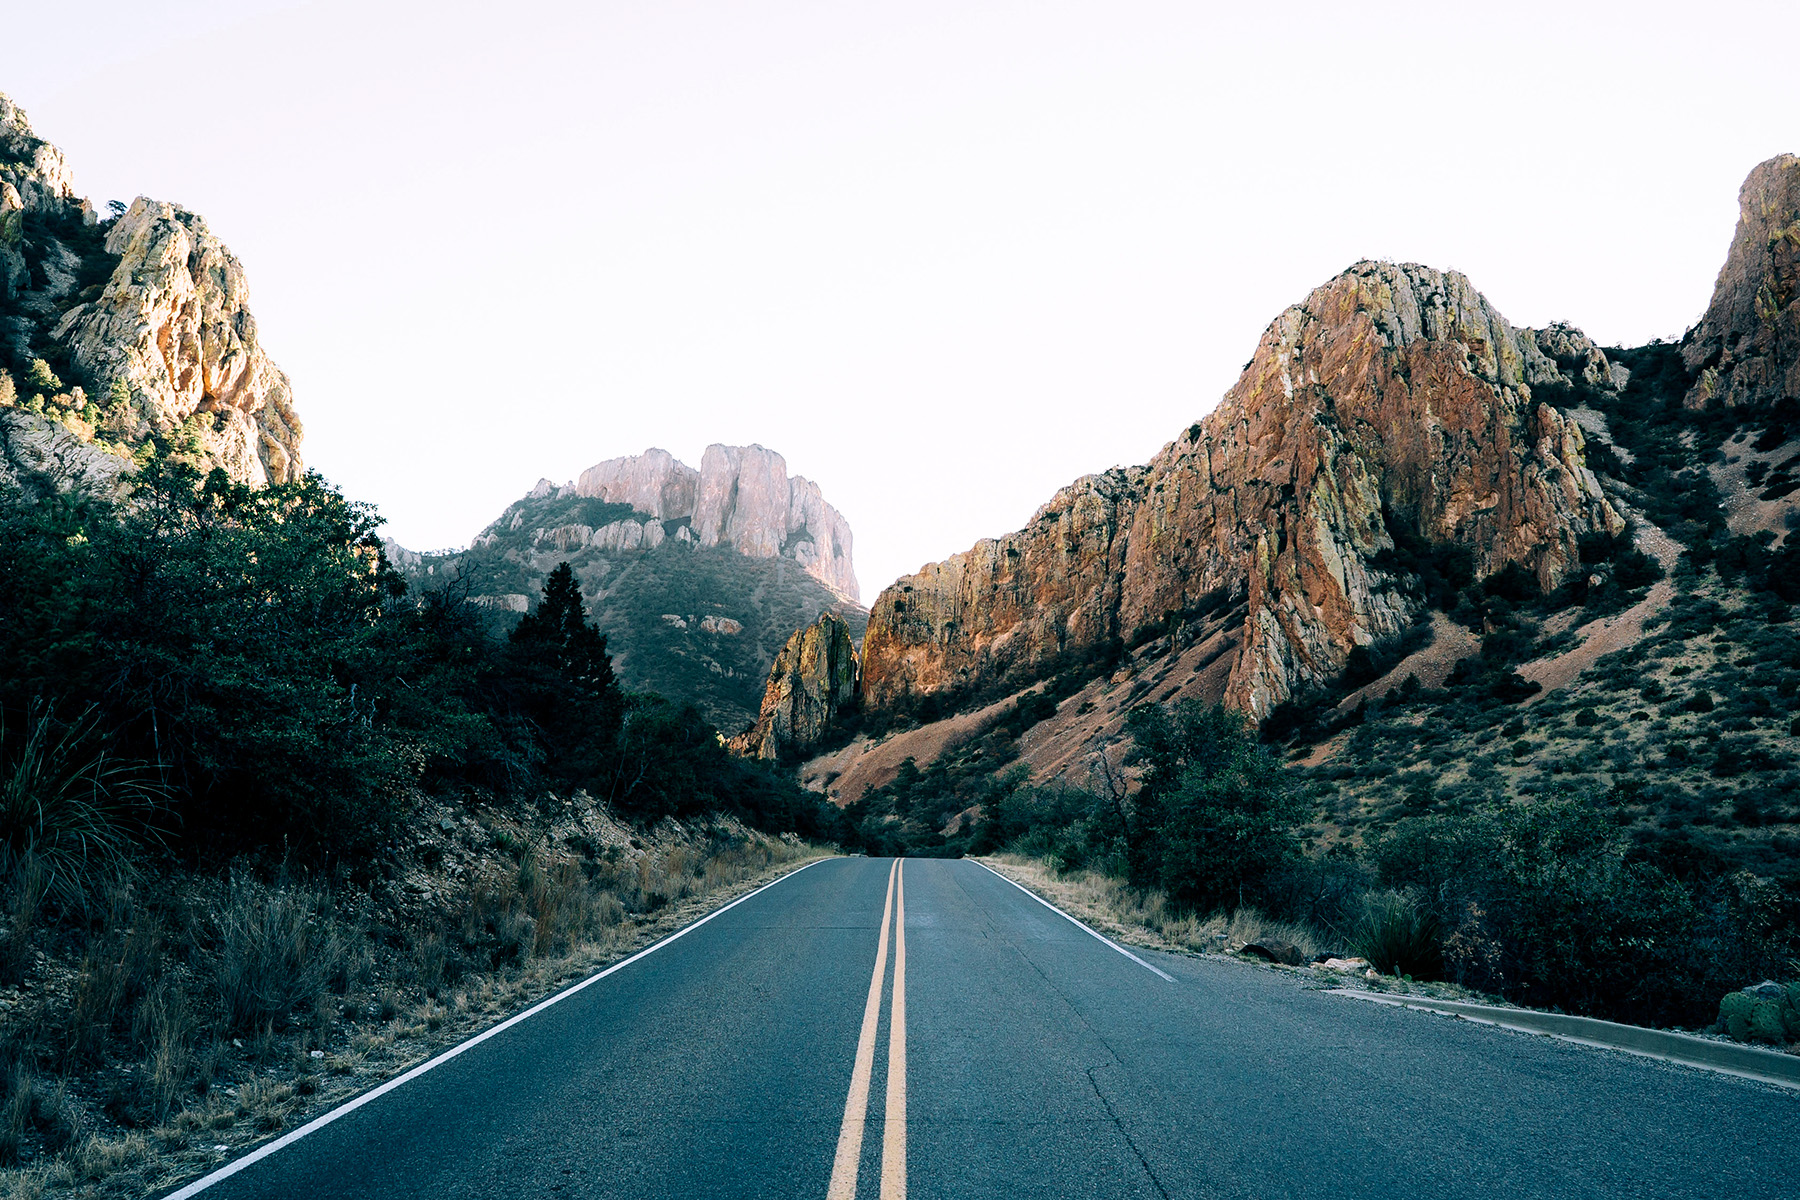 road with mountains surrounding it.